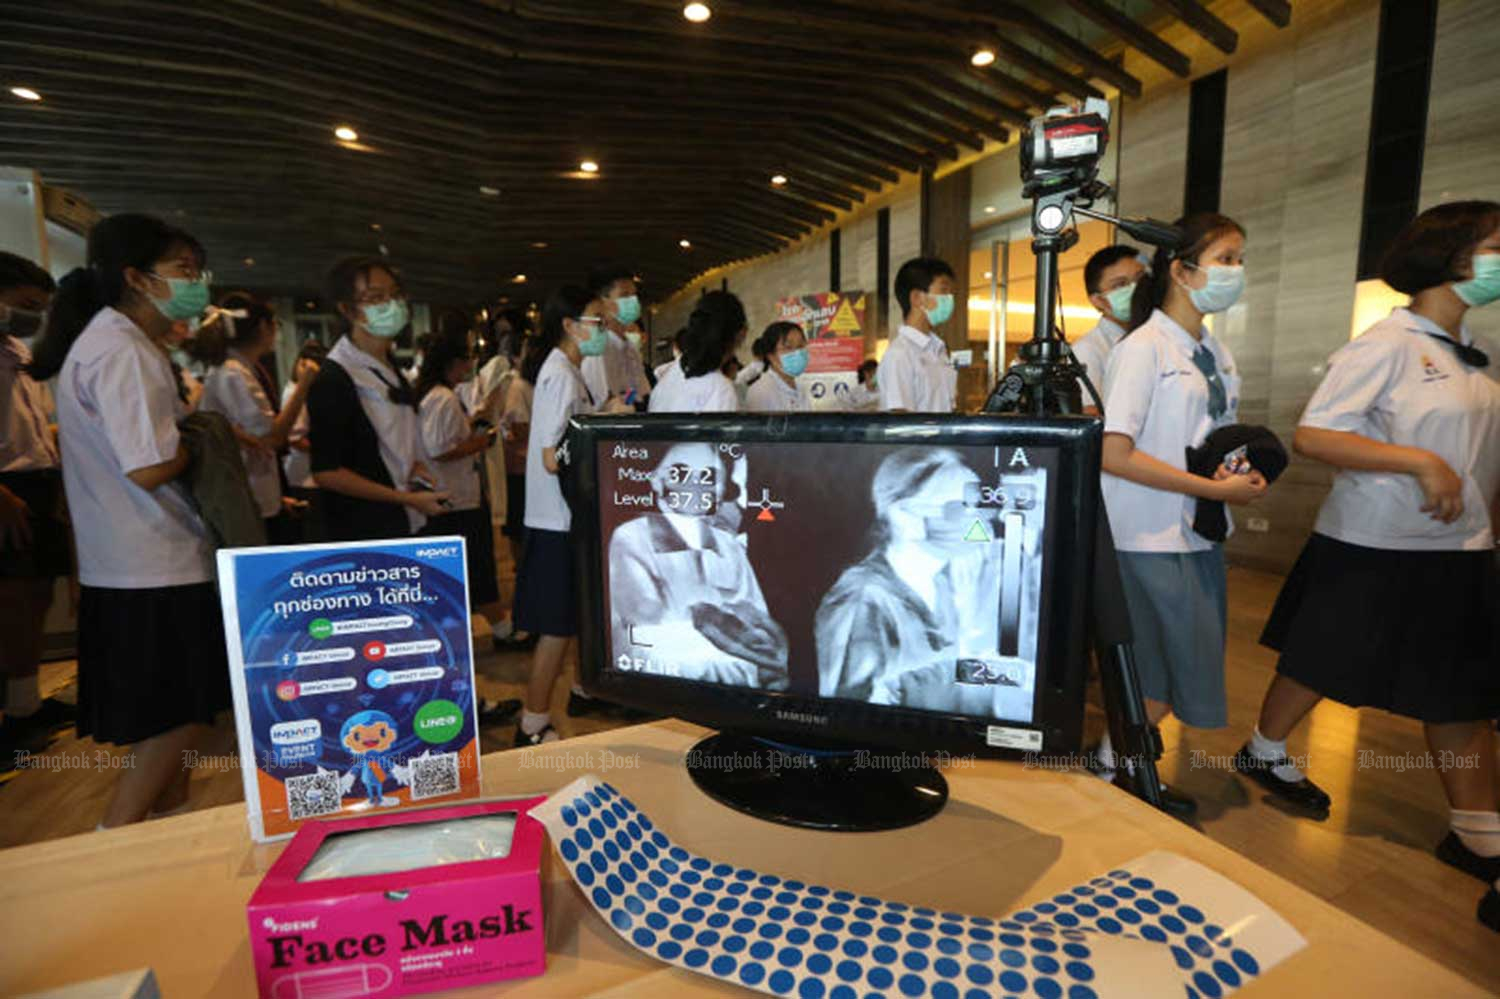 Students applying for seats at Triam Udom Suksa School in Bangkok enter a building to take exams at Muang Thong Thani on March 5. (File photo)